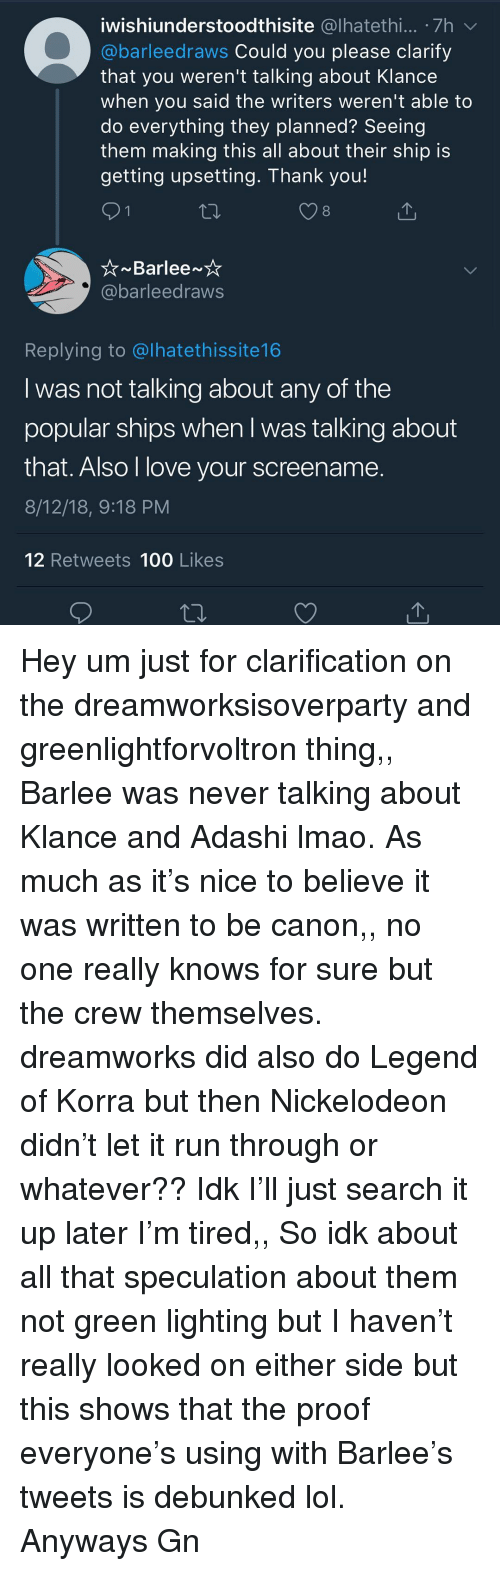 Klance: iwishiunderstoodthisite @lhatethi... .7h  @barleedraws Could you please clarify  that you weren't talking about Klance  when you said the writers weren't able to  do everything they planned? Seeing  them making this all about their ship is  getting upsetting. Thank you!  8  barleedraws  Replying to @lhatethissite16  I was not talking about any of the  popular ships when l was talking about  that. Also l love your screename  8/12/18, 9:18 PM  12 Retweets 100 Likes Hey um just for clarification on the dreamworksisoverparty and greenlightforvoltron thing,, Barlee was never talking about Klance and Adashi lmao. As much as it's nice to believe it was written to be canon,, no one really knows for sure but the crew themselves. dreamworks did also do Legend of Korra but then Nickelodeon didn't let it run through or whatever?? Idk I'll just search it up later I'm tired,, So idk about all that speculation about them not green lighting but I haven't really looked on either side but this shows that the proof everyone's using with Barlee's tweets is debunked lol. Anyways Gn